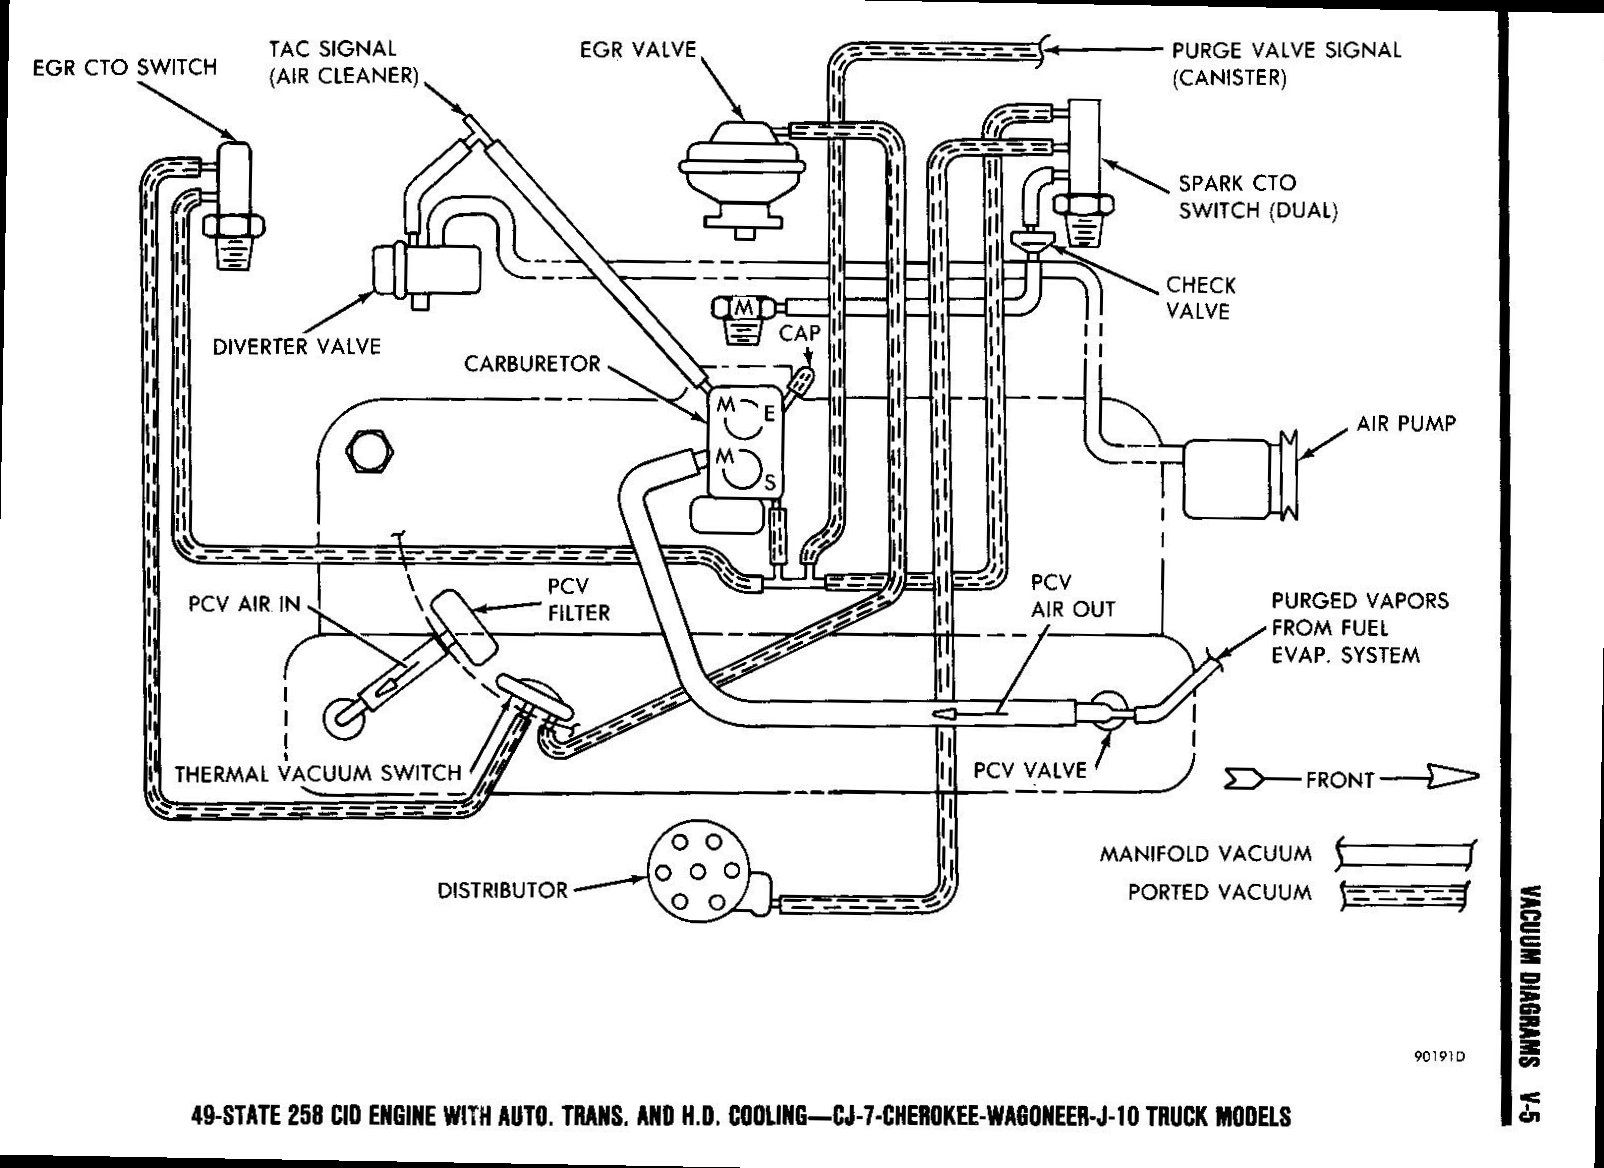 Cj5 258 Vacuum Diagram Jeep Pinterest. Cj5 258 Vacuum Diagram Jeep. Wiring. 1969 Mustang Engine Vacuum Diagram At Scoala.co